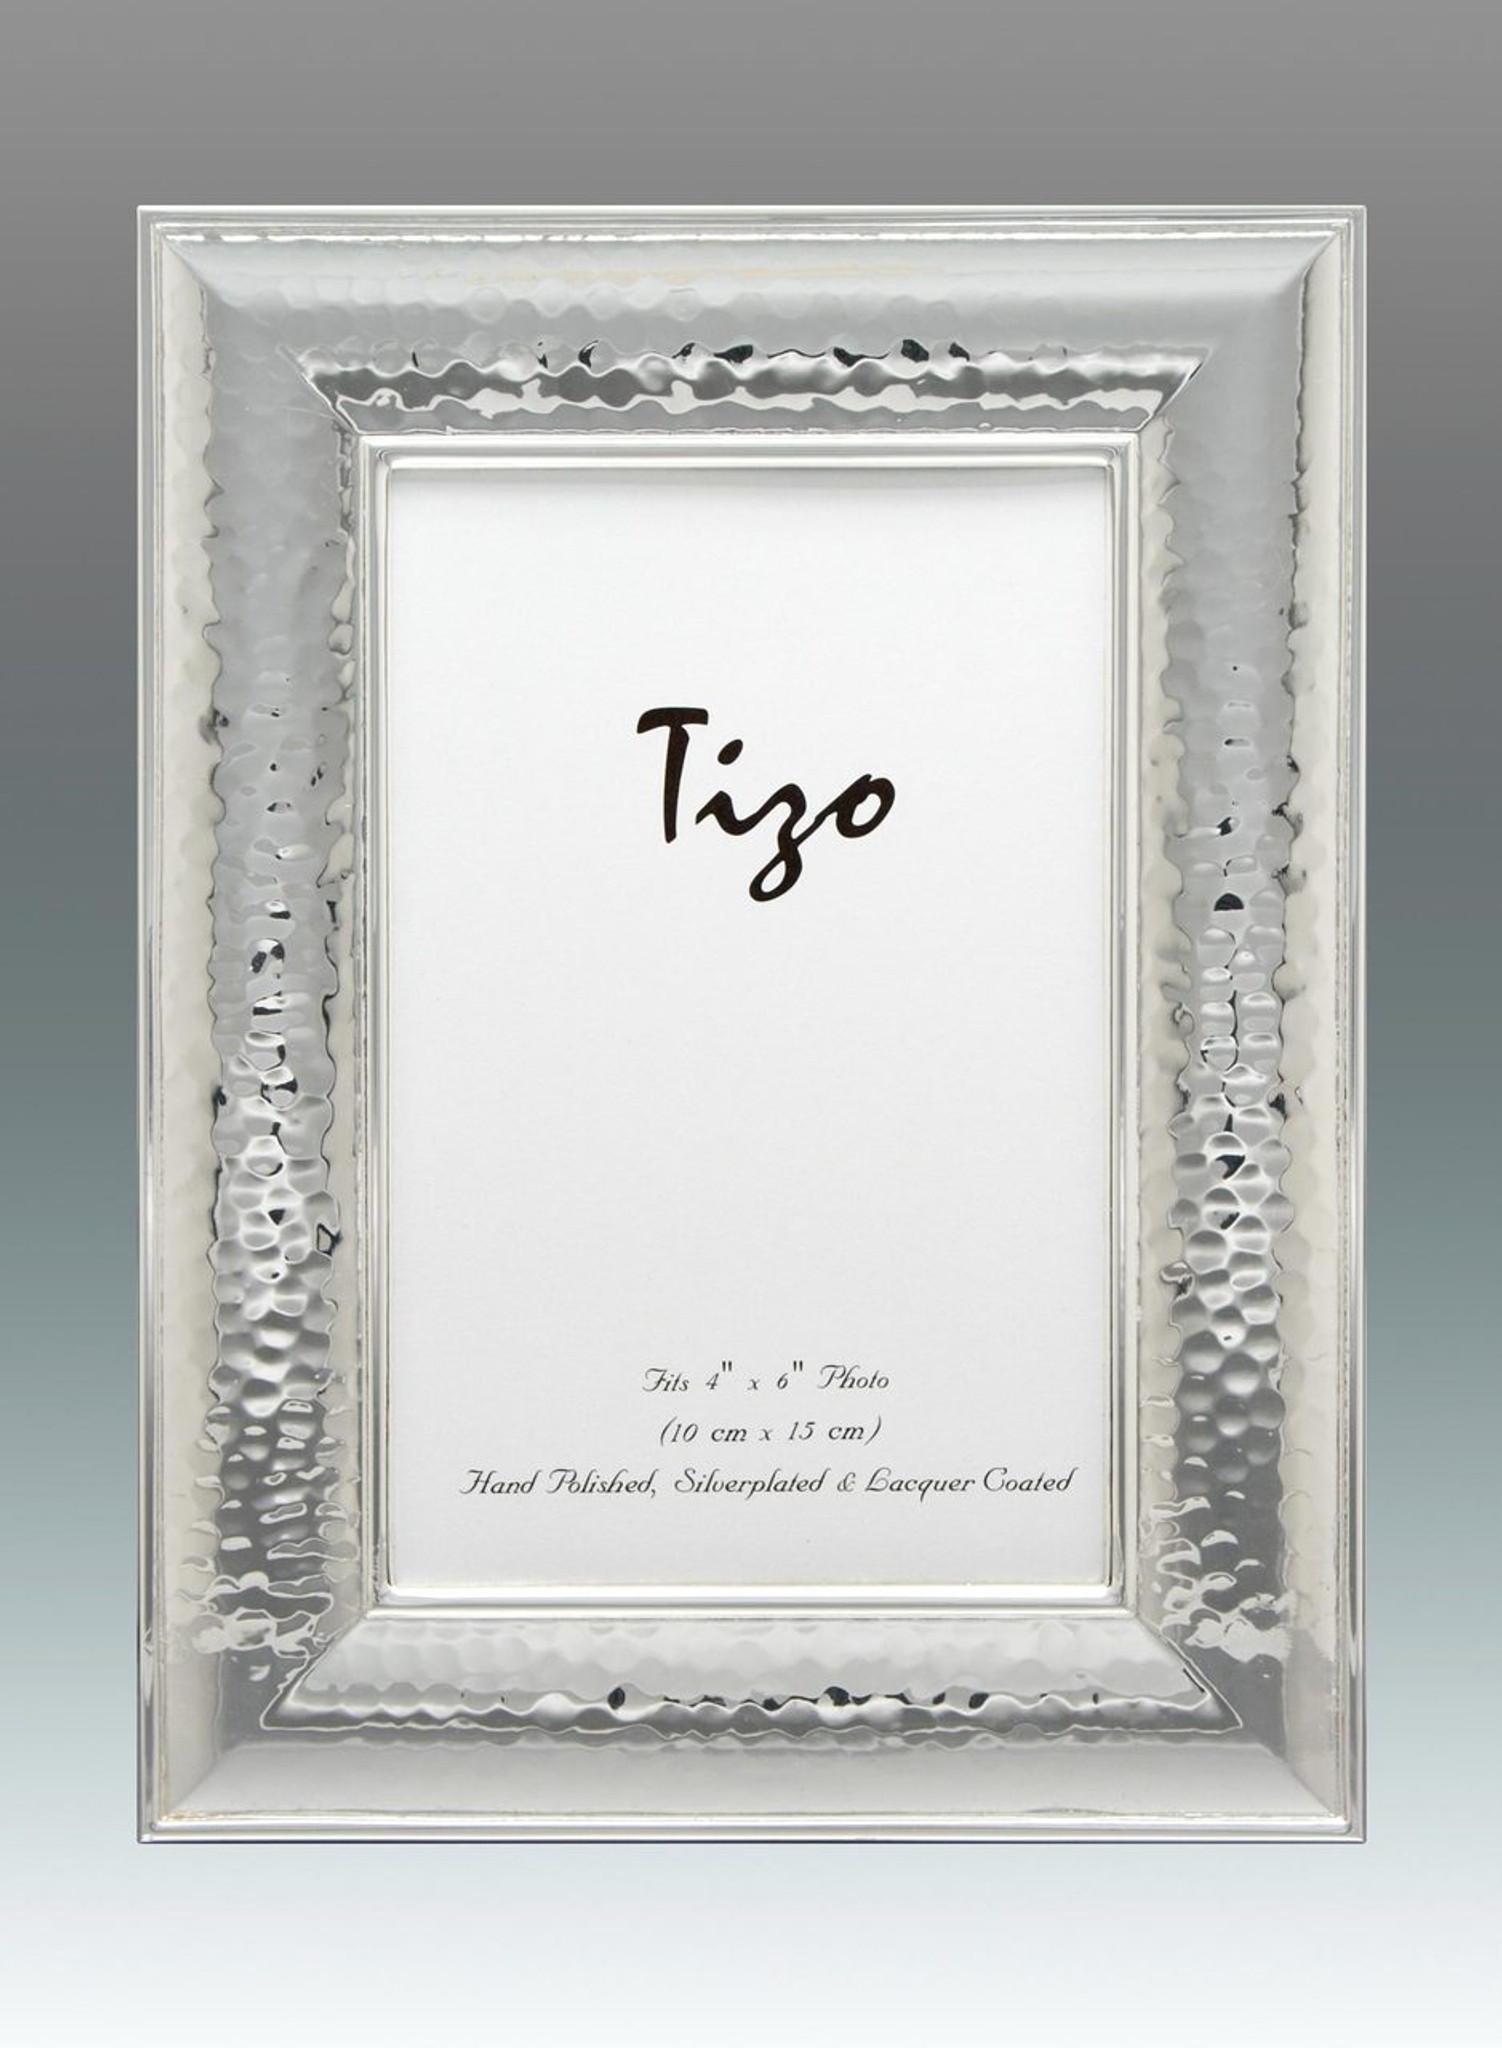 Tizo Tick Hammered 5 x 7 Inch Silver Plated Picture Frame - HomeBello